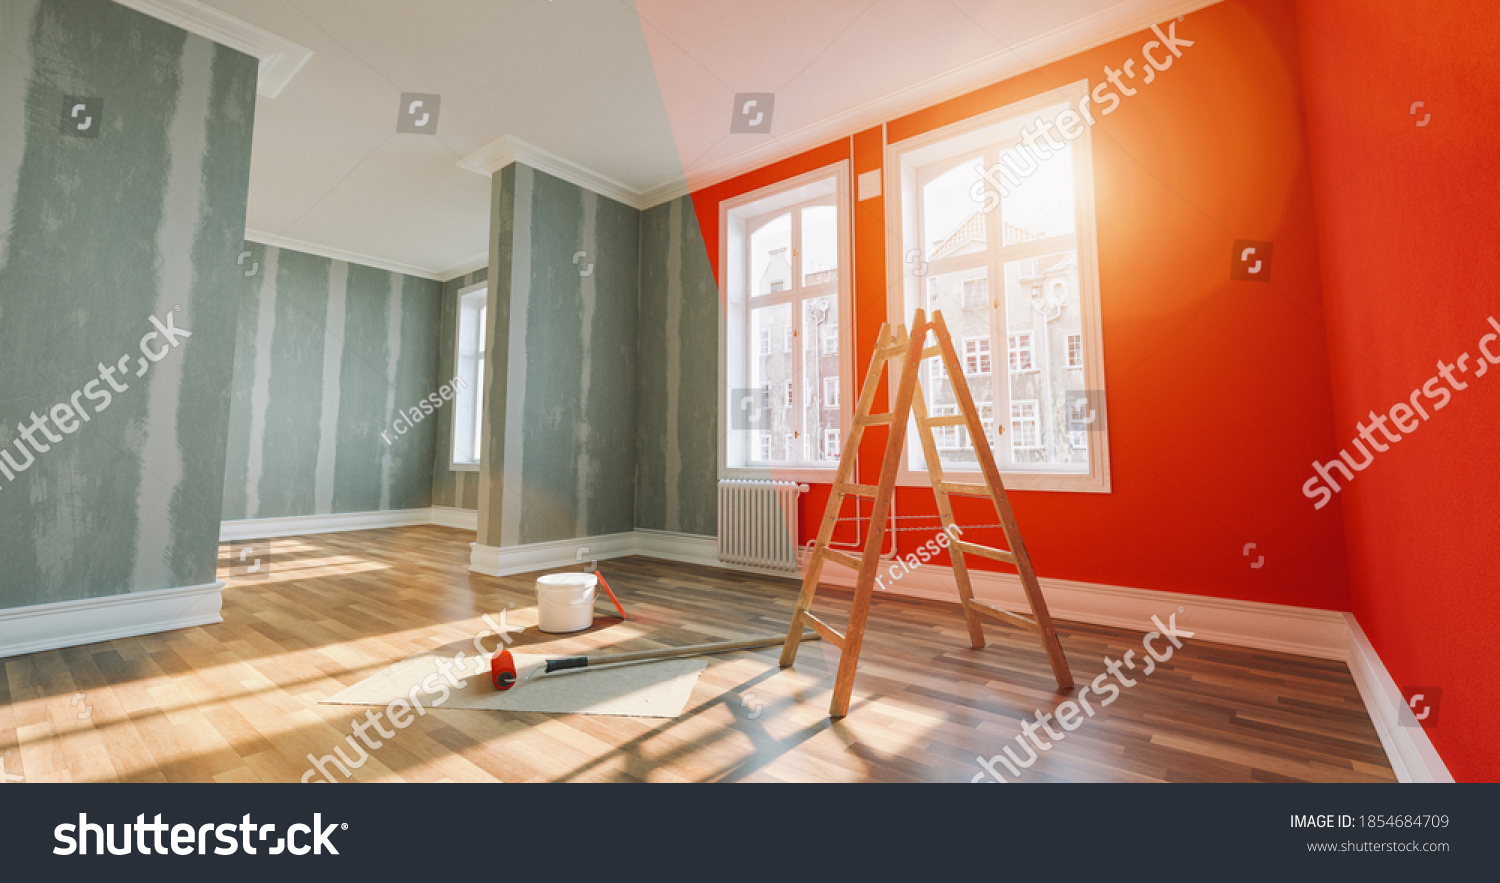 Painting wall red in room before and after restoration or refurbishment #1854684709